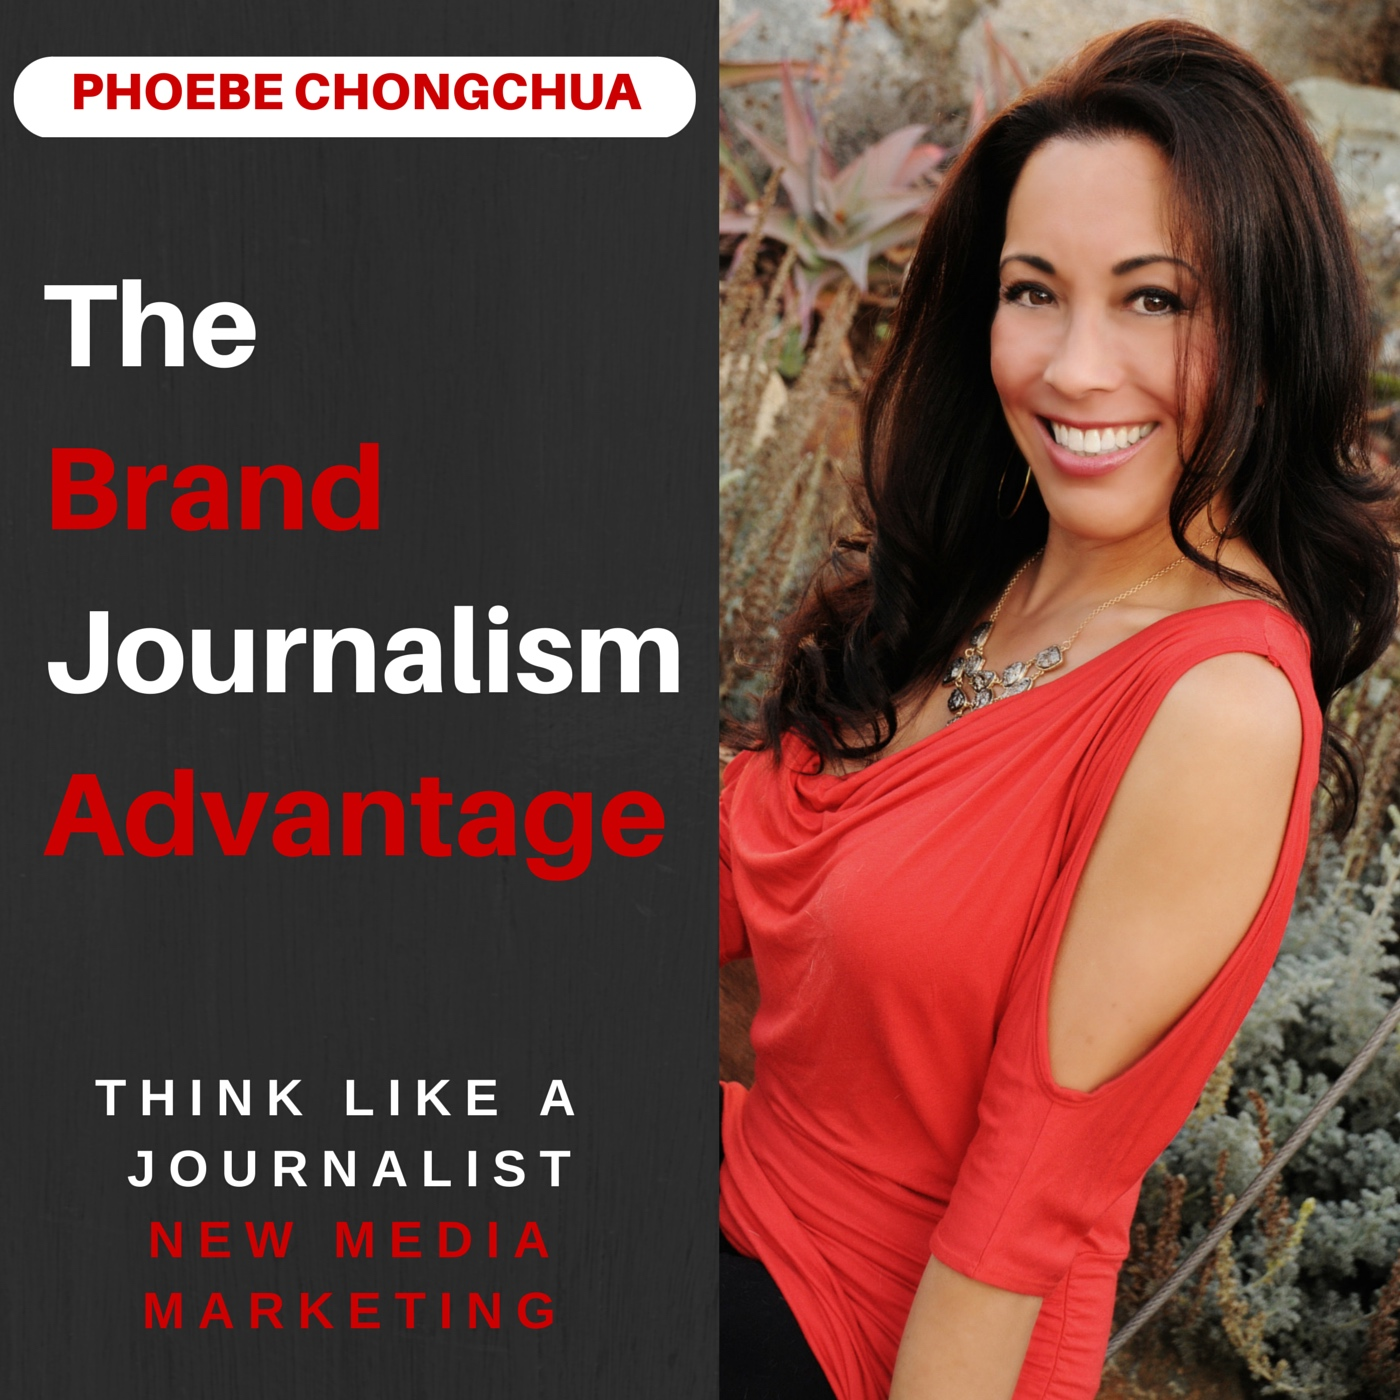 The Brand Journalism Advantage Podcast: New Media Marketing | Thought Leaders | Brand Training | Phoebe Chongchua